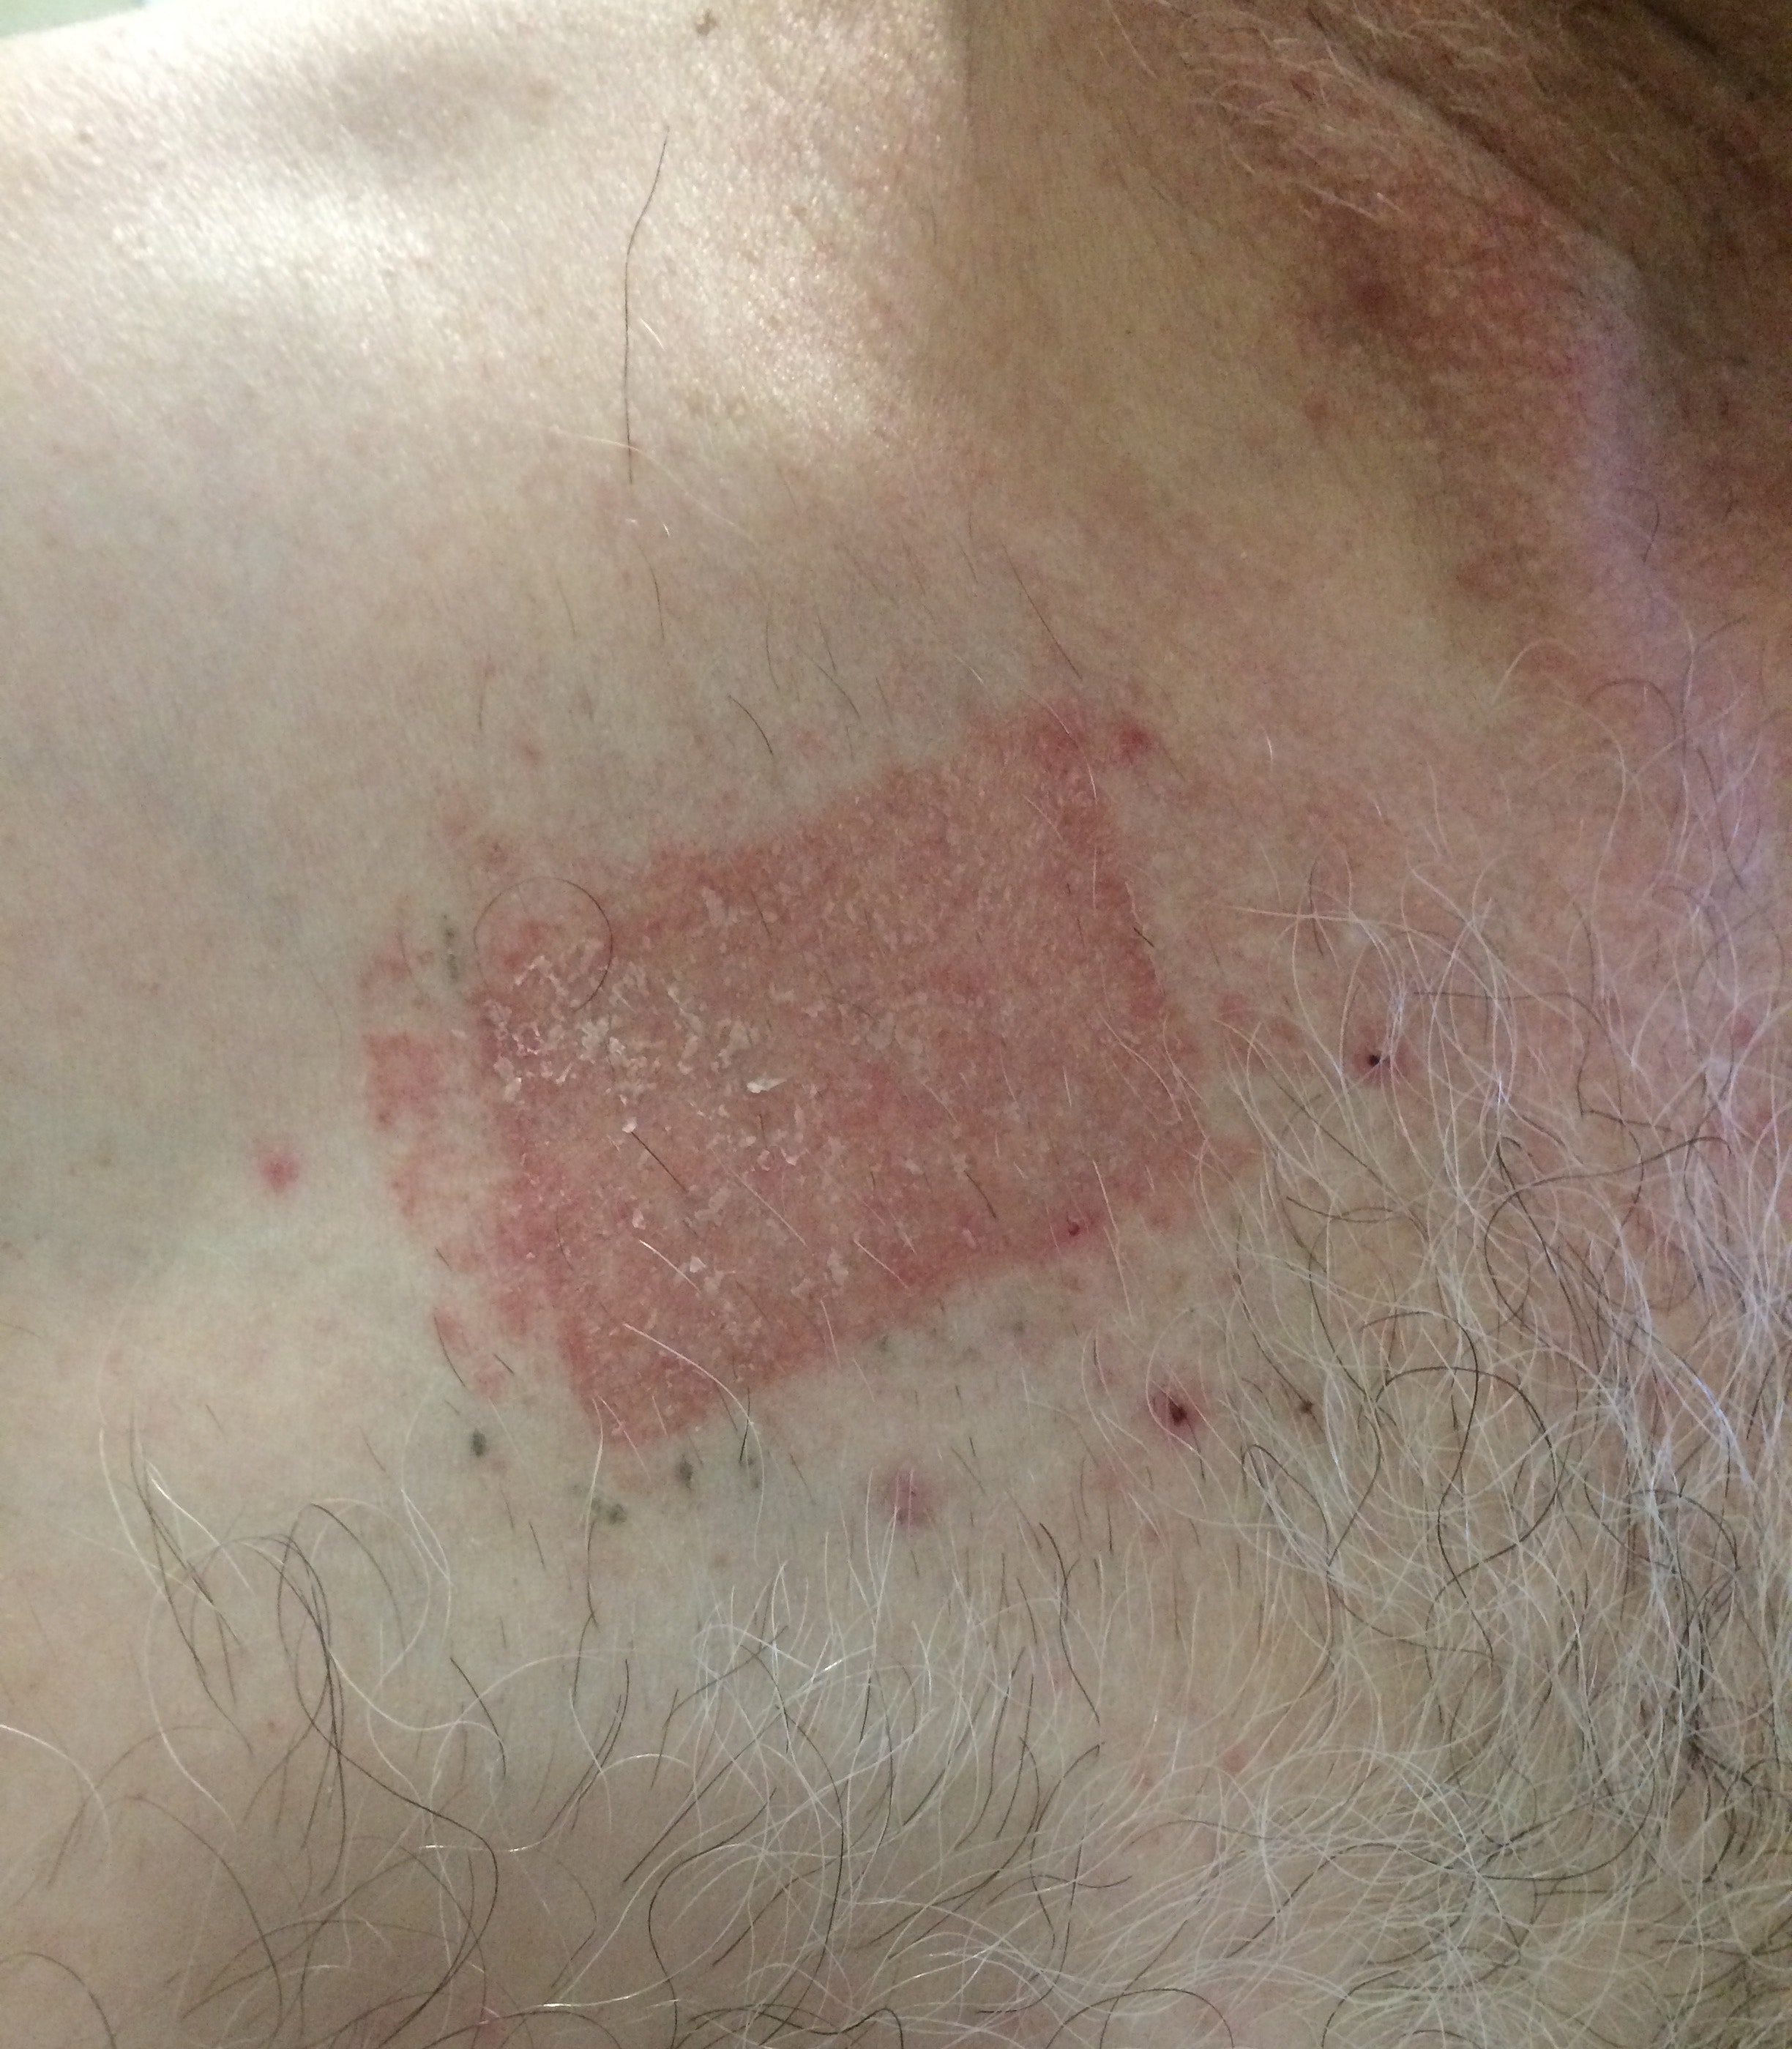 Contact Dermatitis: Common Skin Rashes And What To Do About Them